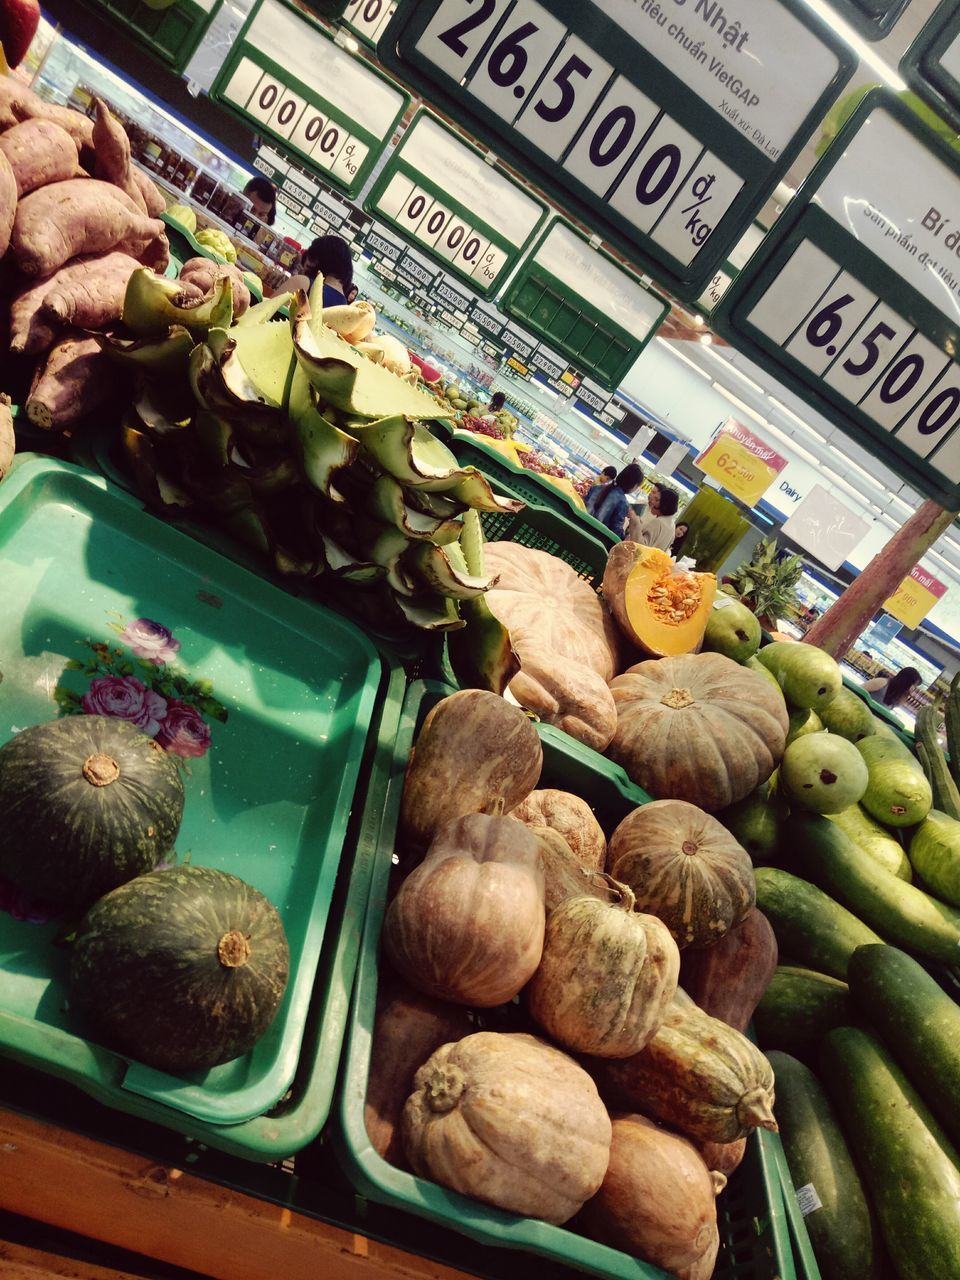 food, food and drink, for sale, freshness, vegetable, retail, healthy eating, variation, price tag, market, choice, text, day, market stall, fruit, banana, large group of objects, no people, farmer market, stack, outdoors, close-up